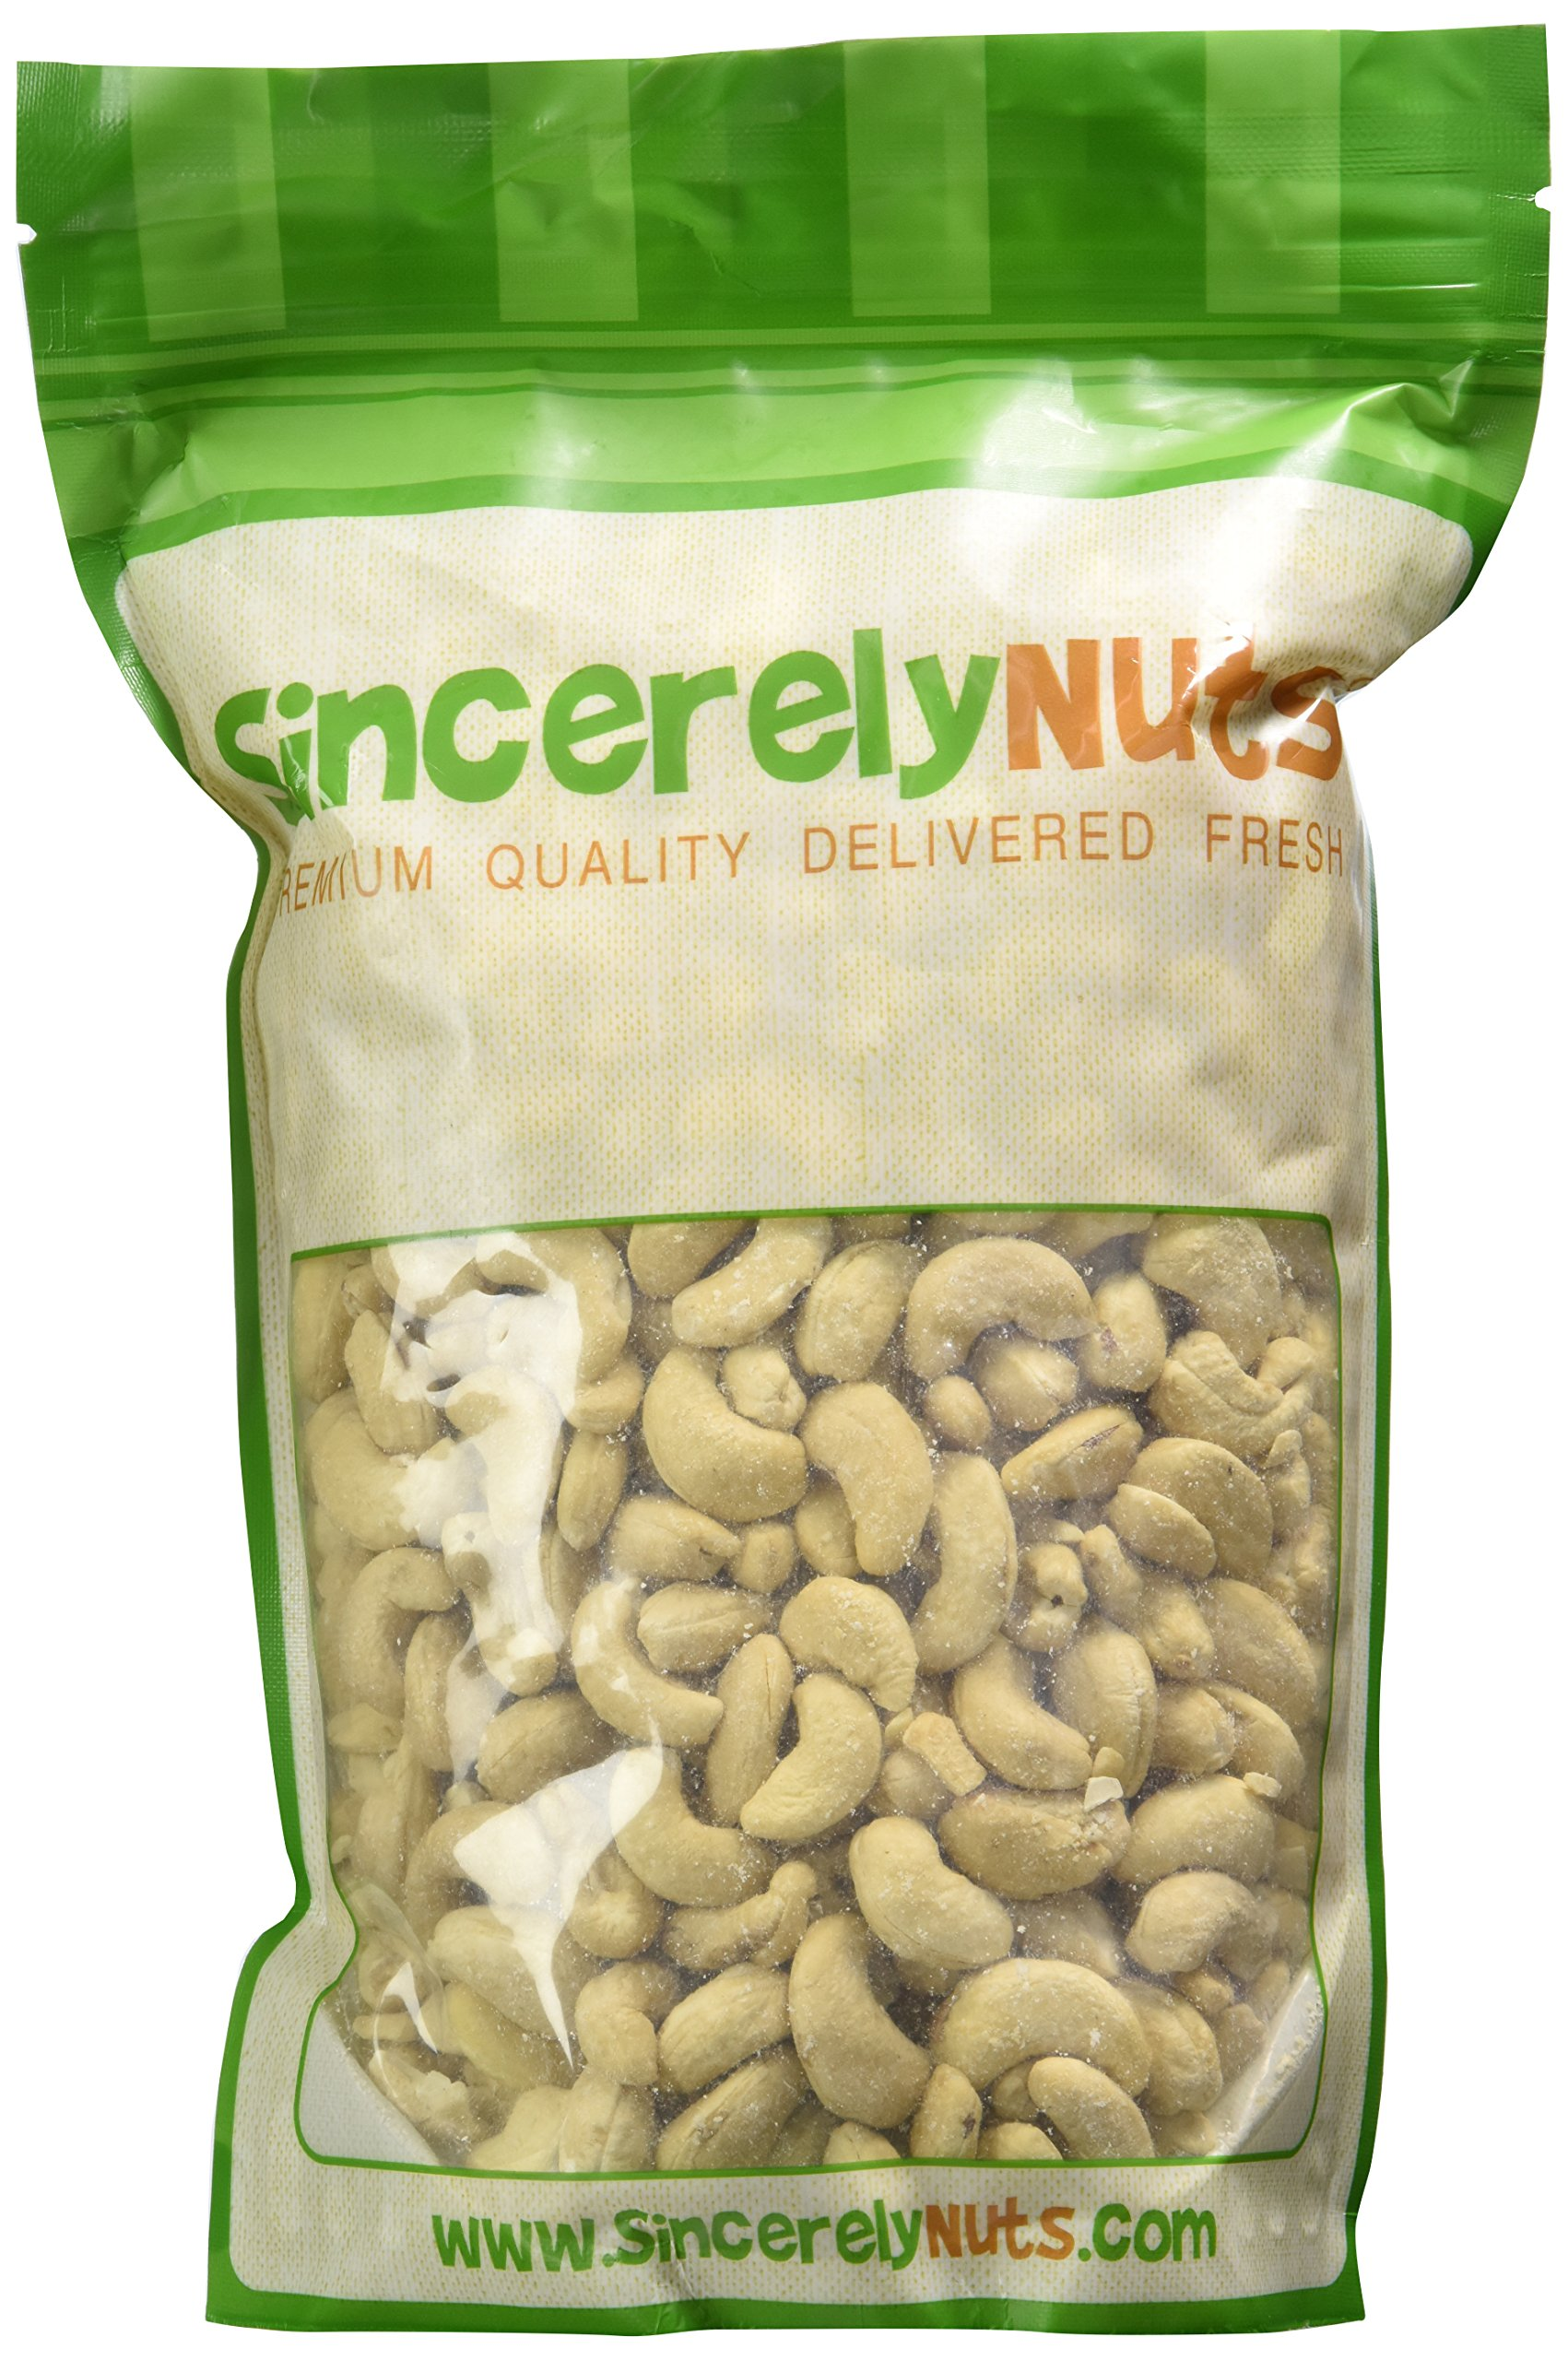 Sincerely Nuts – Whole Organic Raw Cashews | Two Lb. Bag | Deluxe Kosher Snack Food | Healthy Source of Protein, Vitamin & Mineral Nutritional Content | Gourmet Quality Vegan Cashew Nut